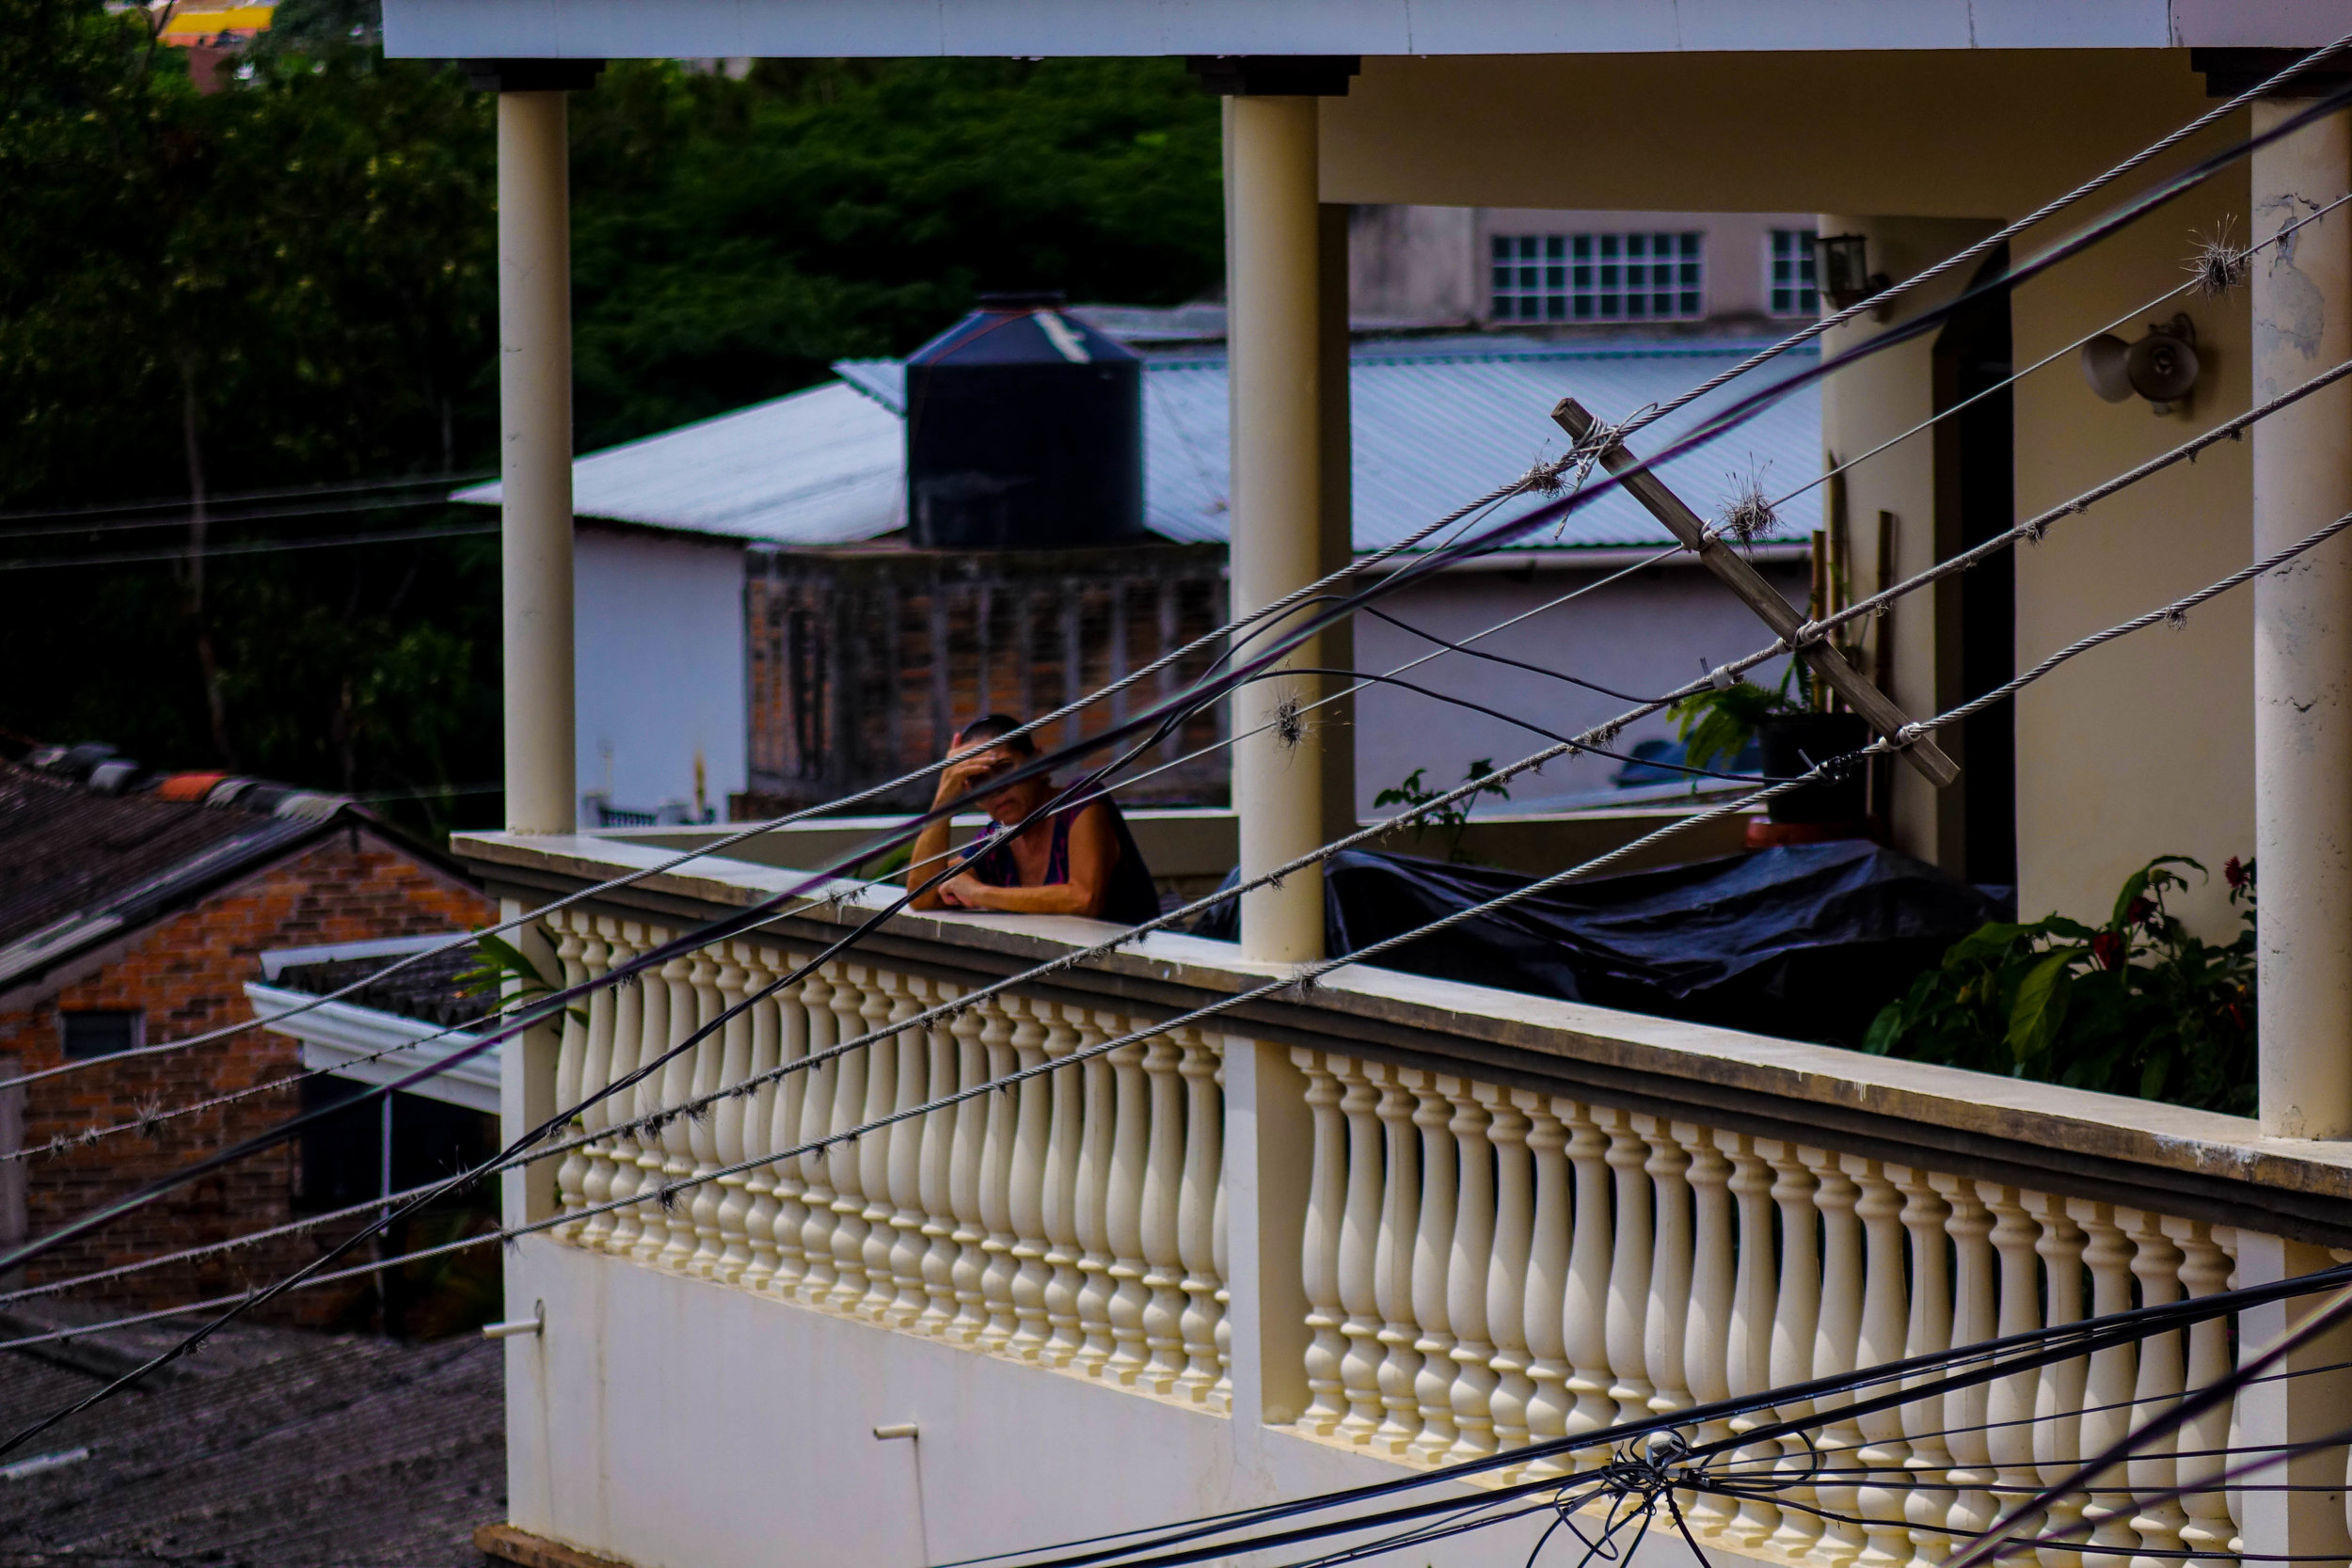 A woman standing on the balcony of her home in Tegucigalpa.